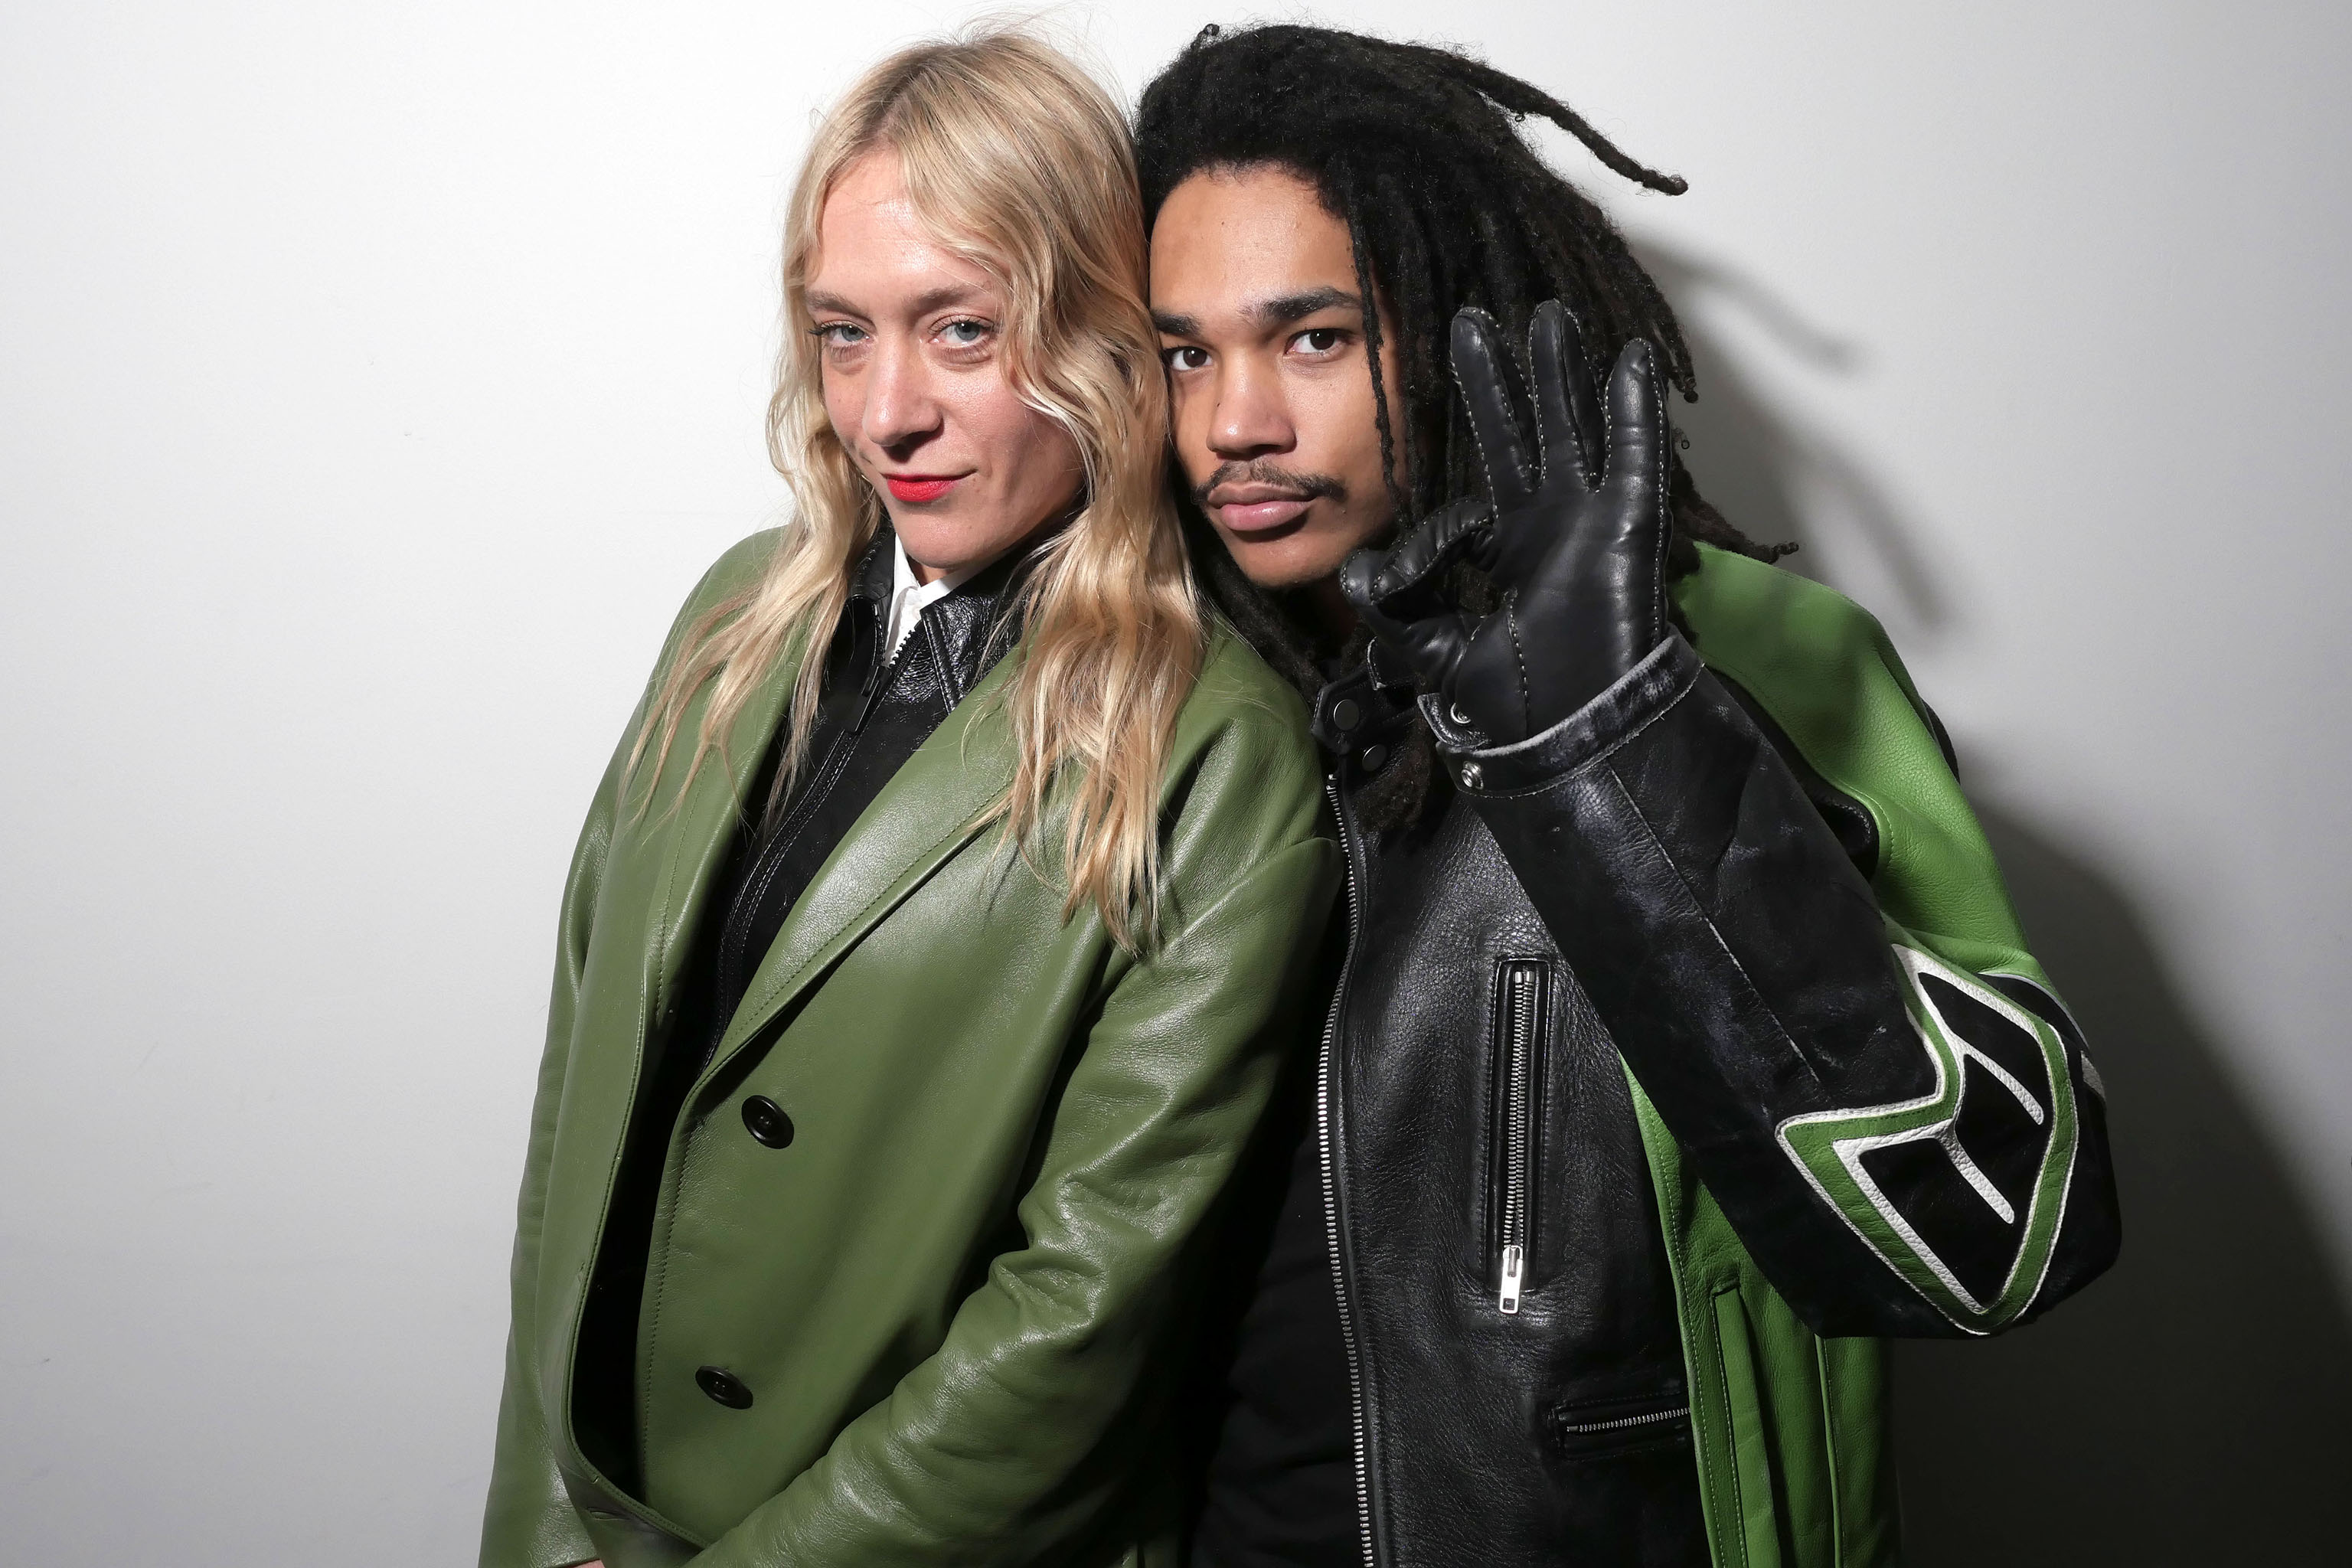 Chloe Sevigny and Luka Sabbat